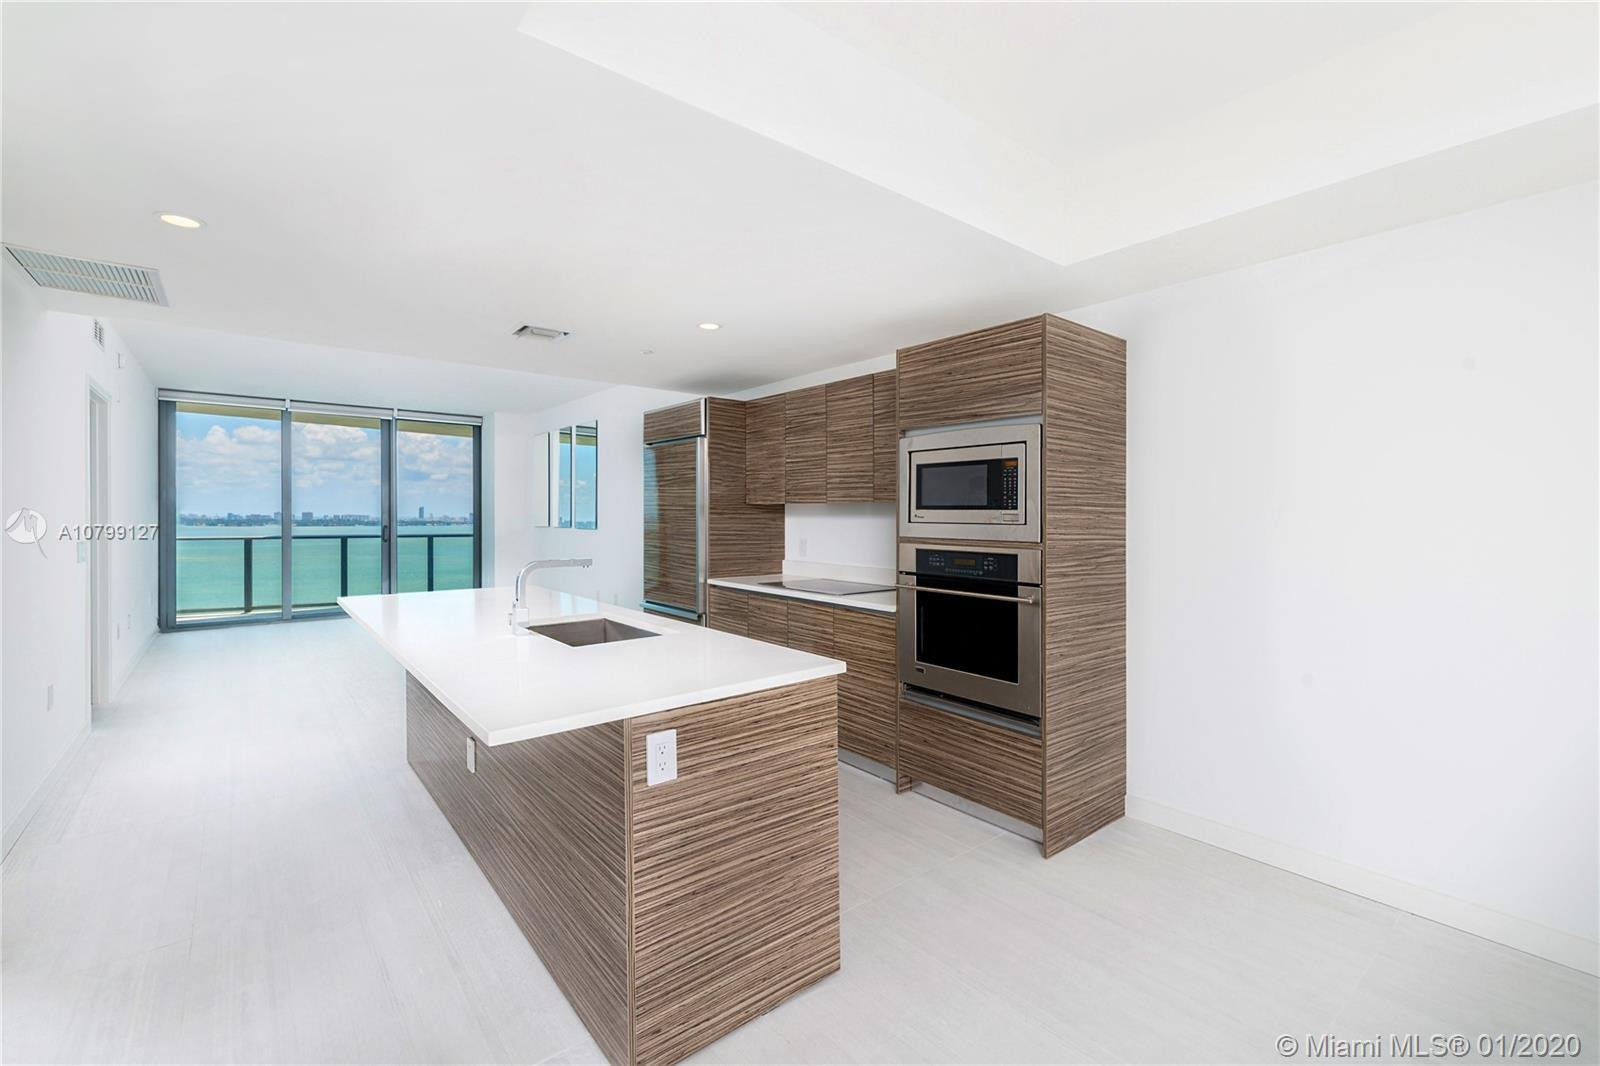 Enjoy unobstructed bay views from this beautiful residence. Featuring 2 bedrooms, 2 baths plus den,